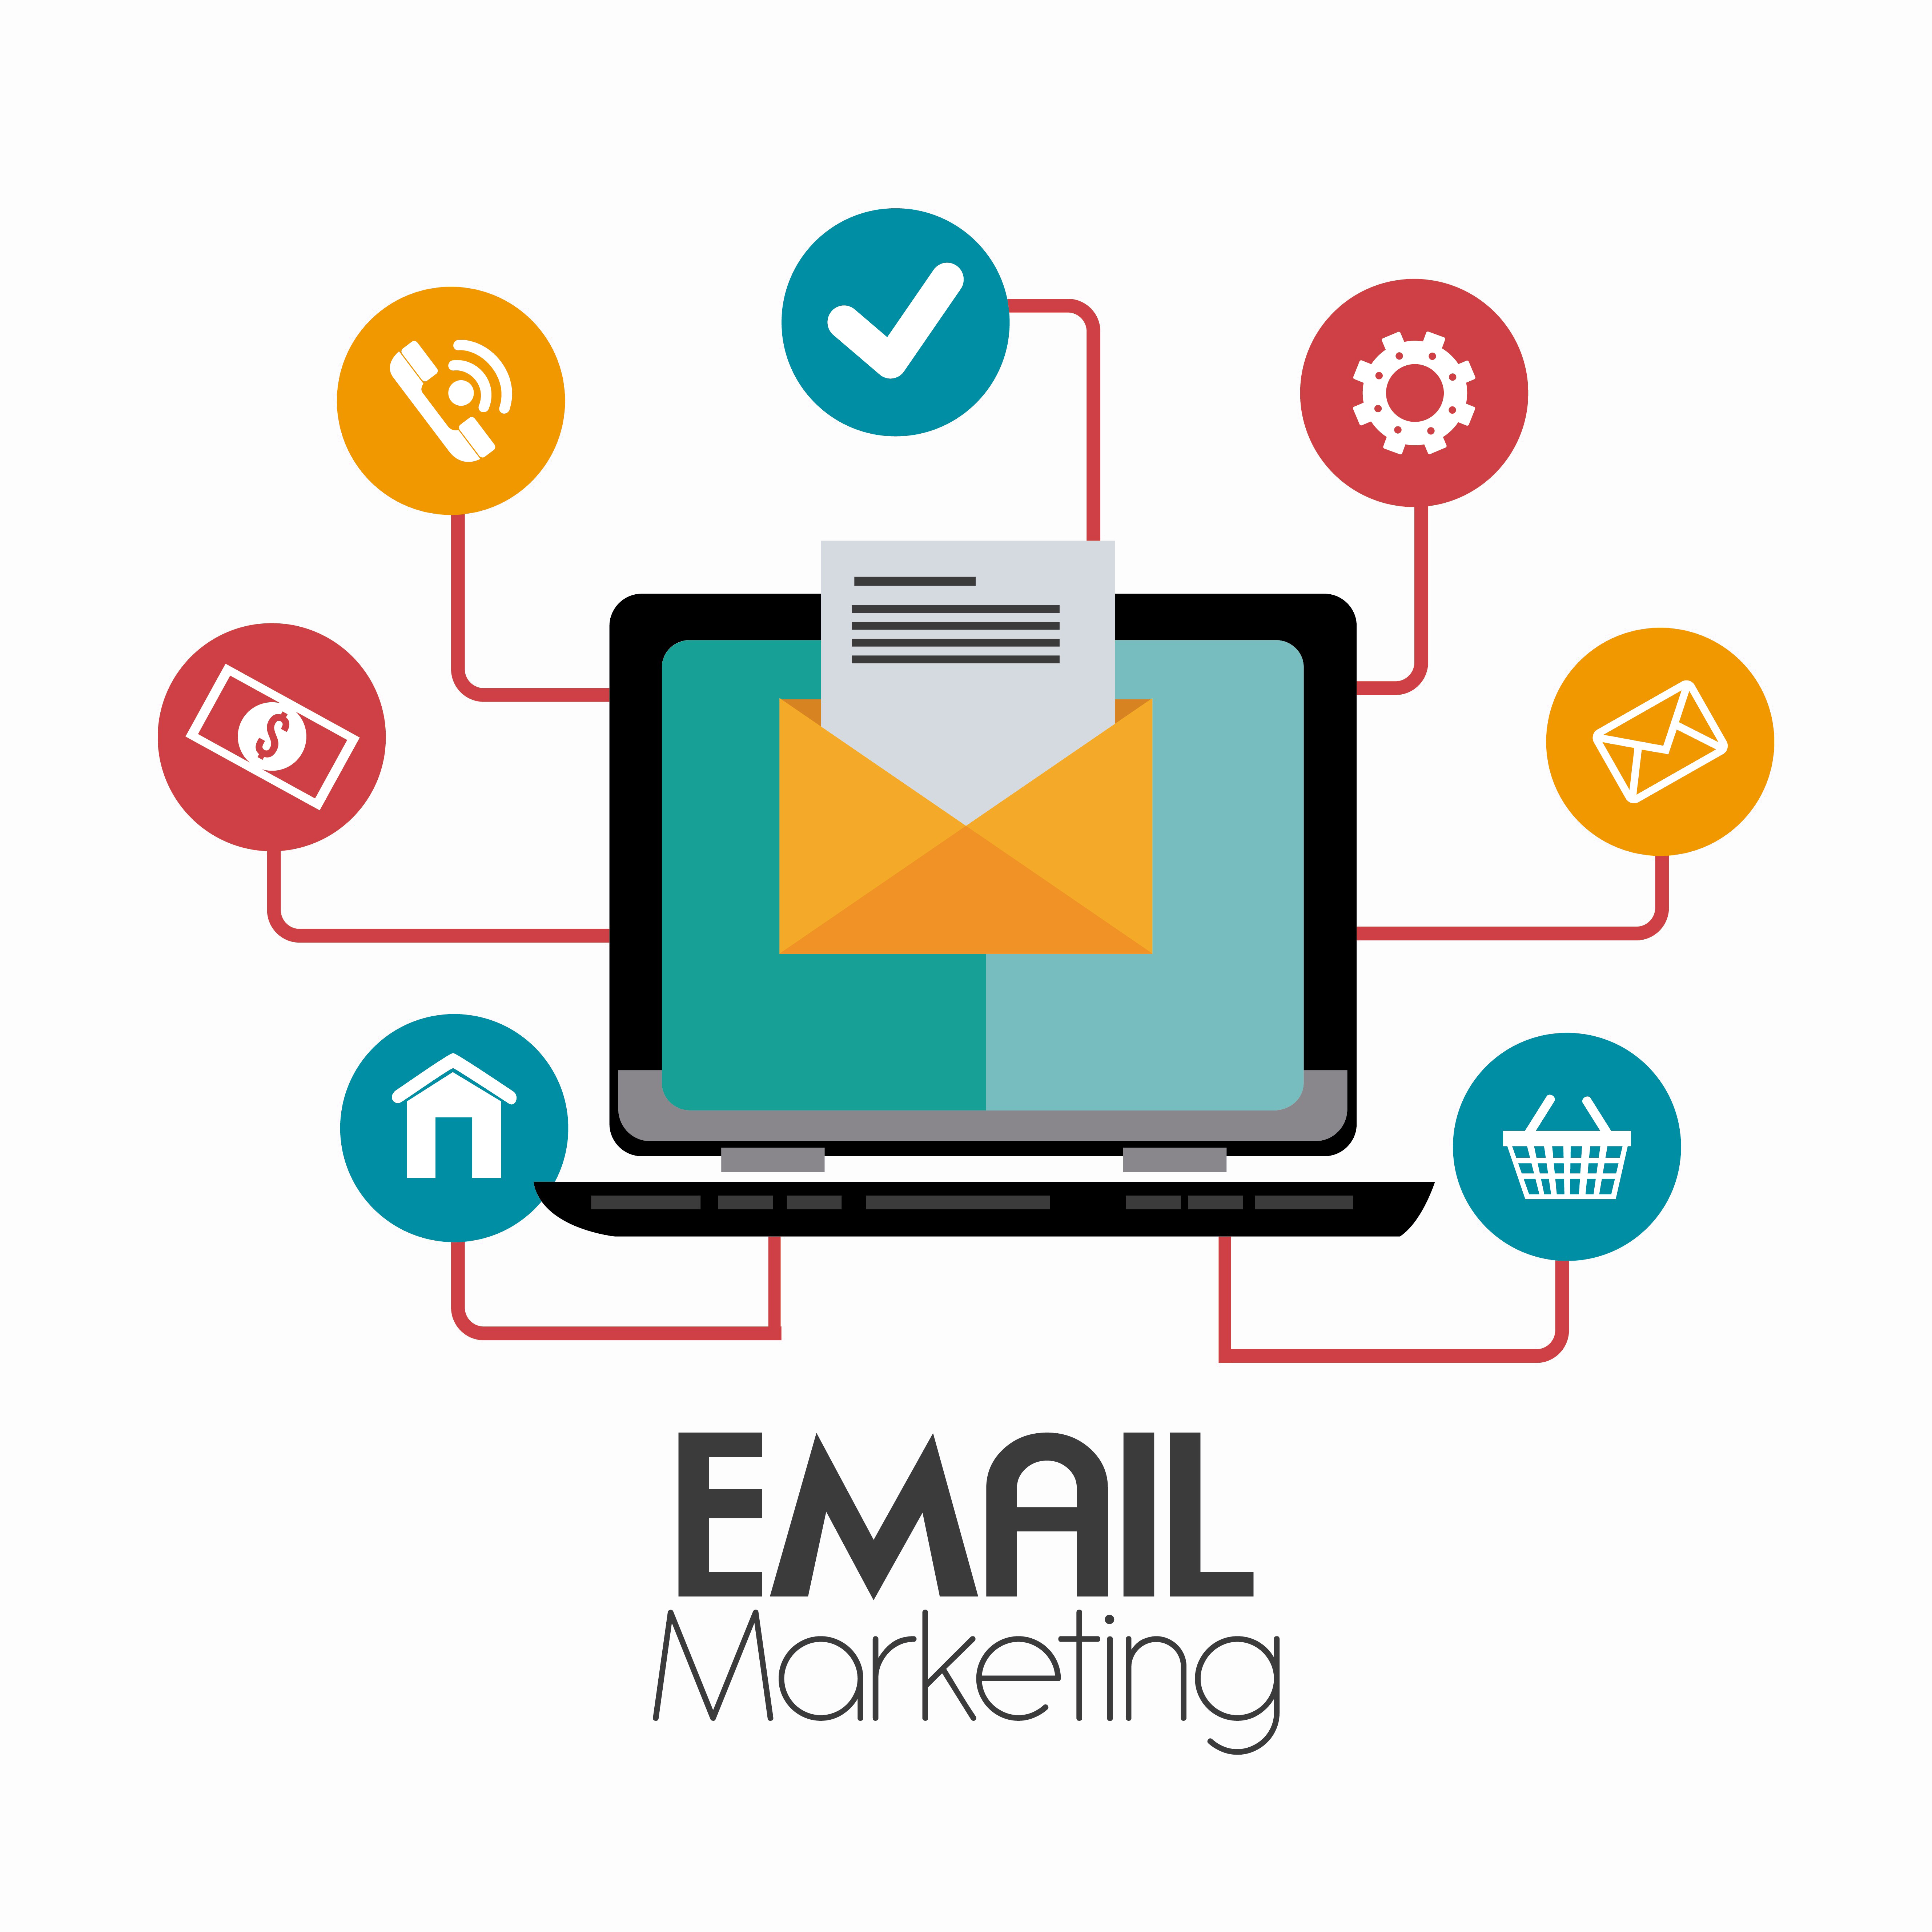 Email marketing png. Image arts